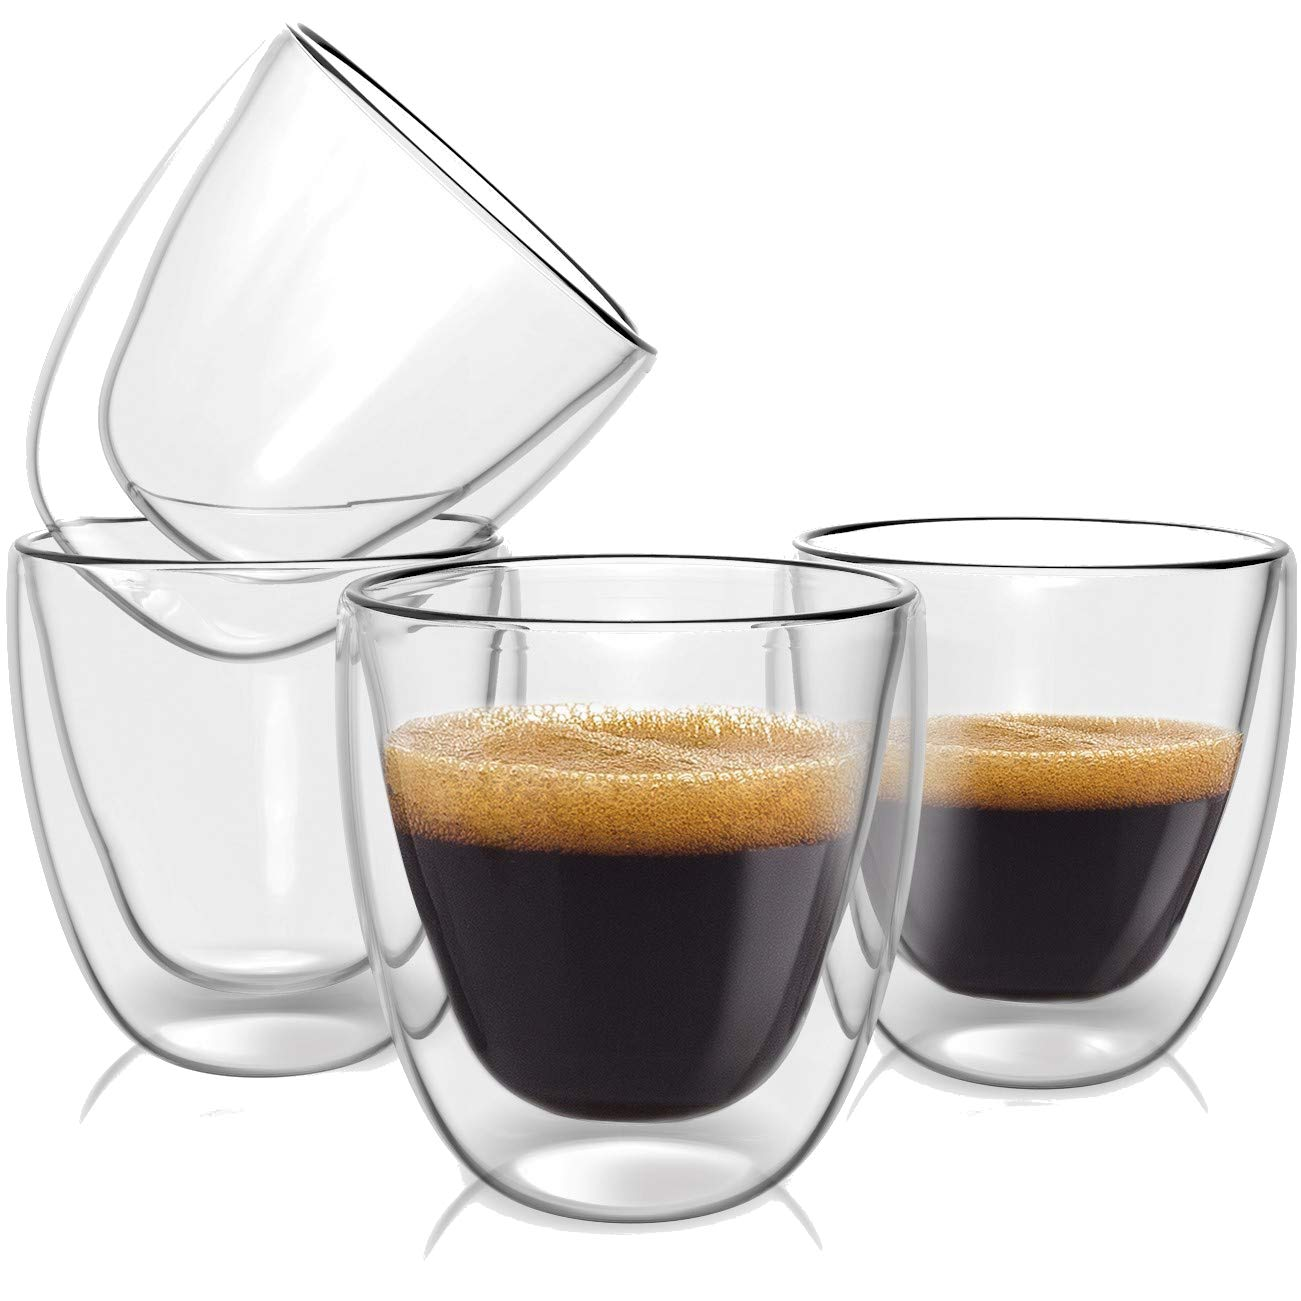 Double Wall Espresso Cups Set - Insulated Coffee Shot Glasses - 2.6oz, Set of 4 - Demitasse Gift Box by Evaryl (Image #1)